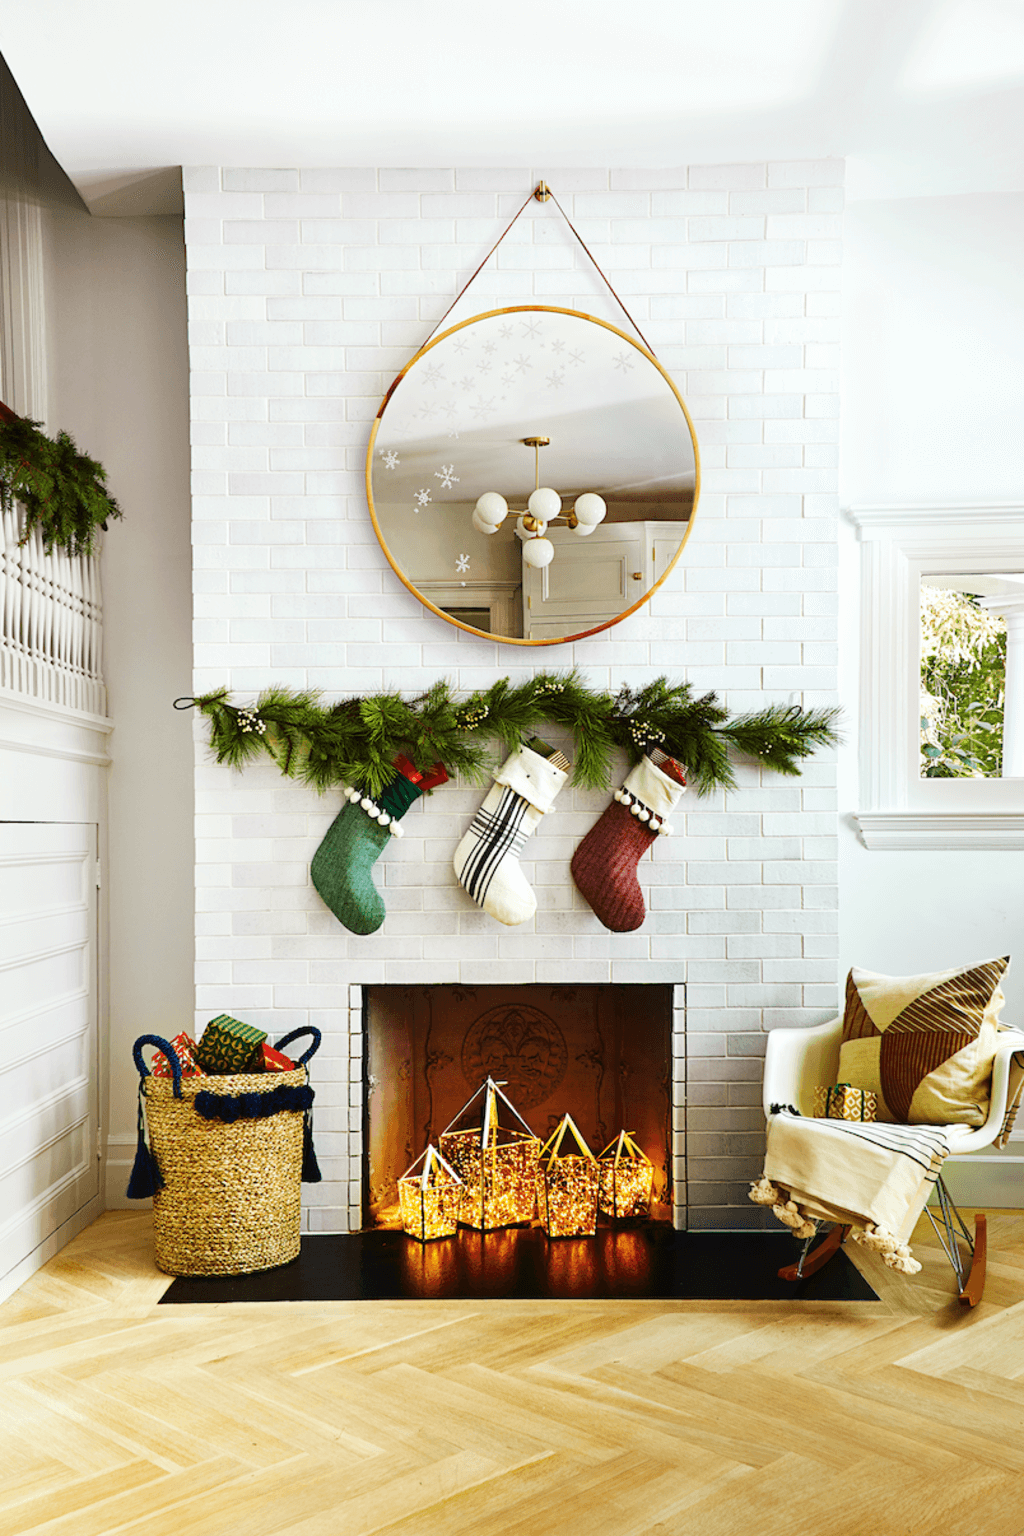 living-room-decorations 70+ Impressive Christmas Decorations to Do Yourself 2020 - 2021